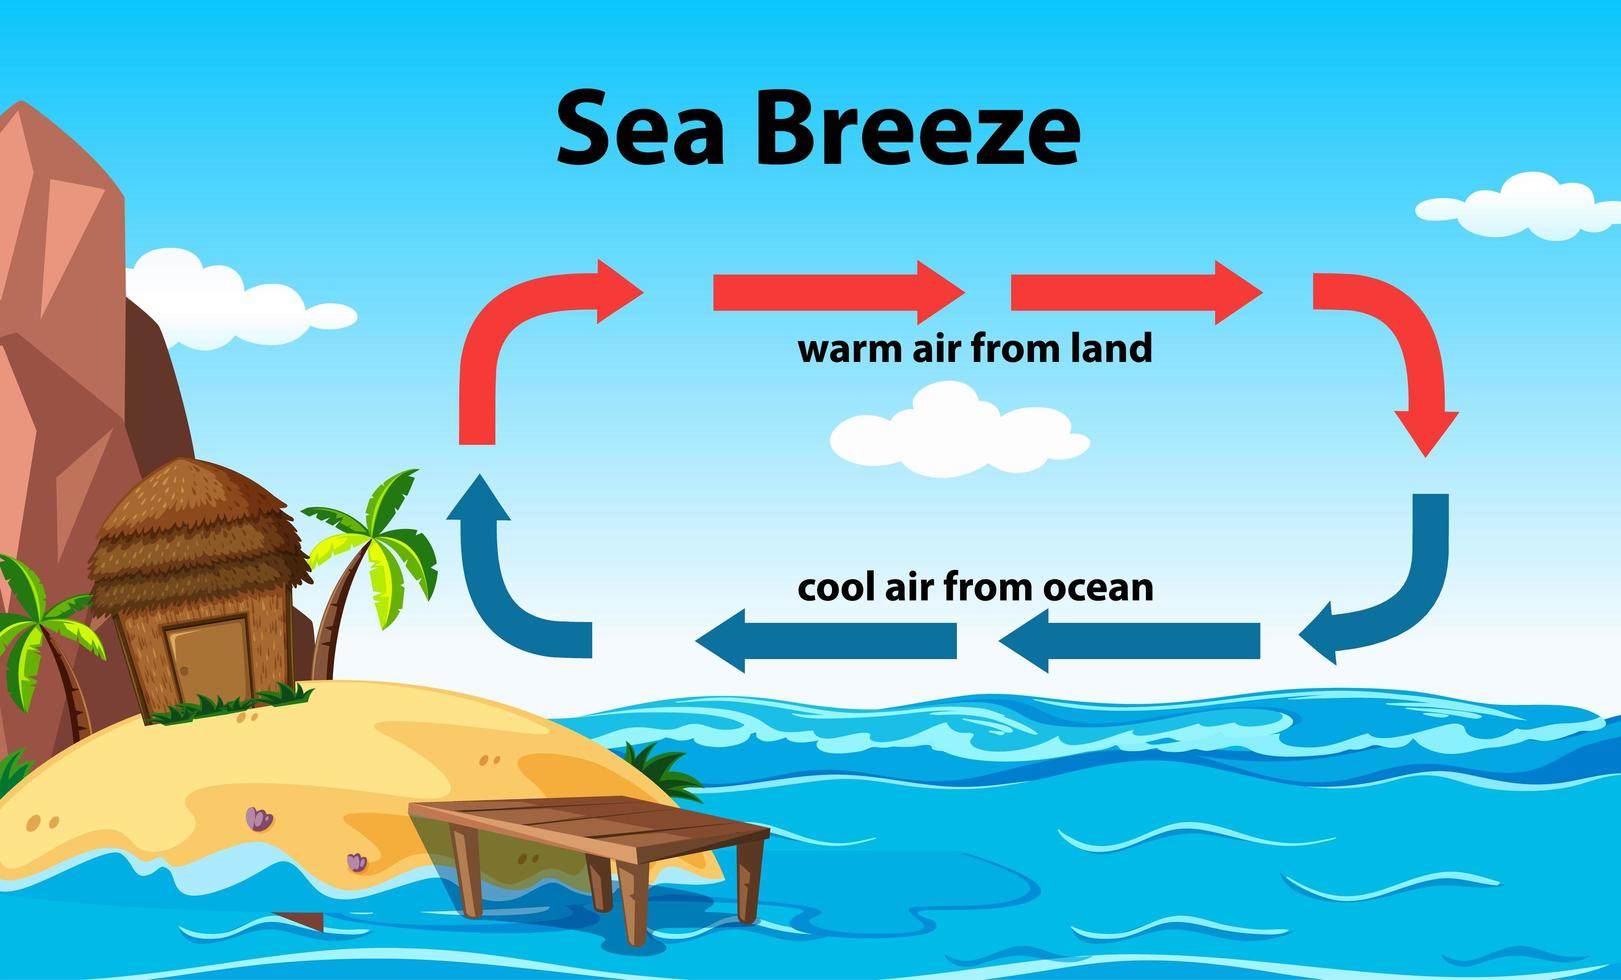 Science Educational Poster Design For Sea Breeze